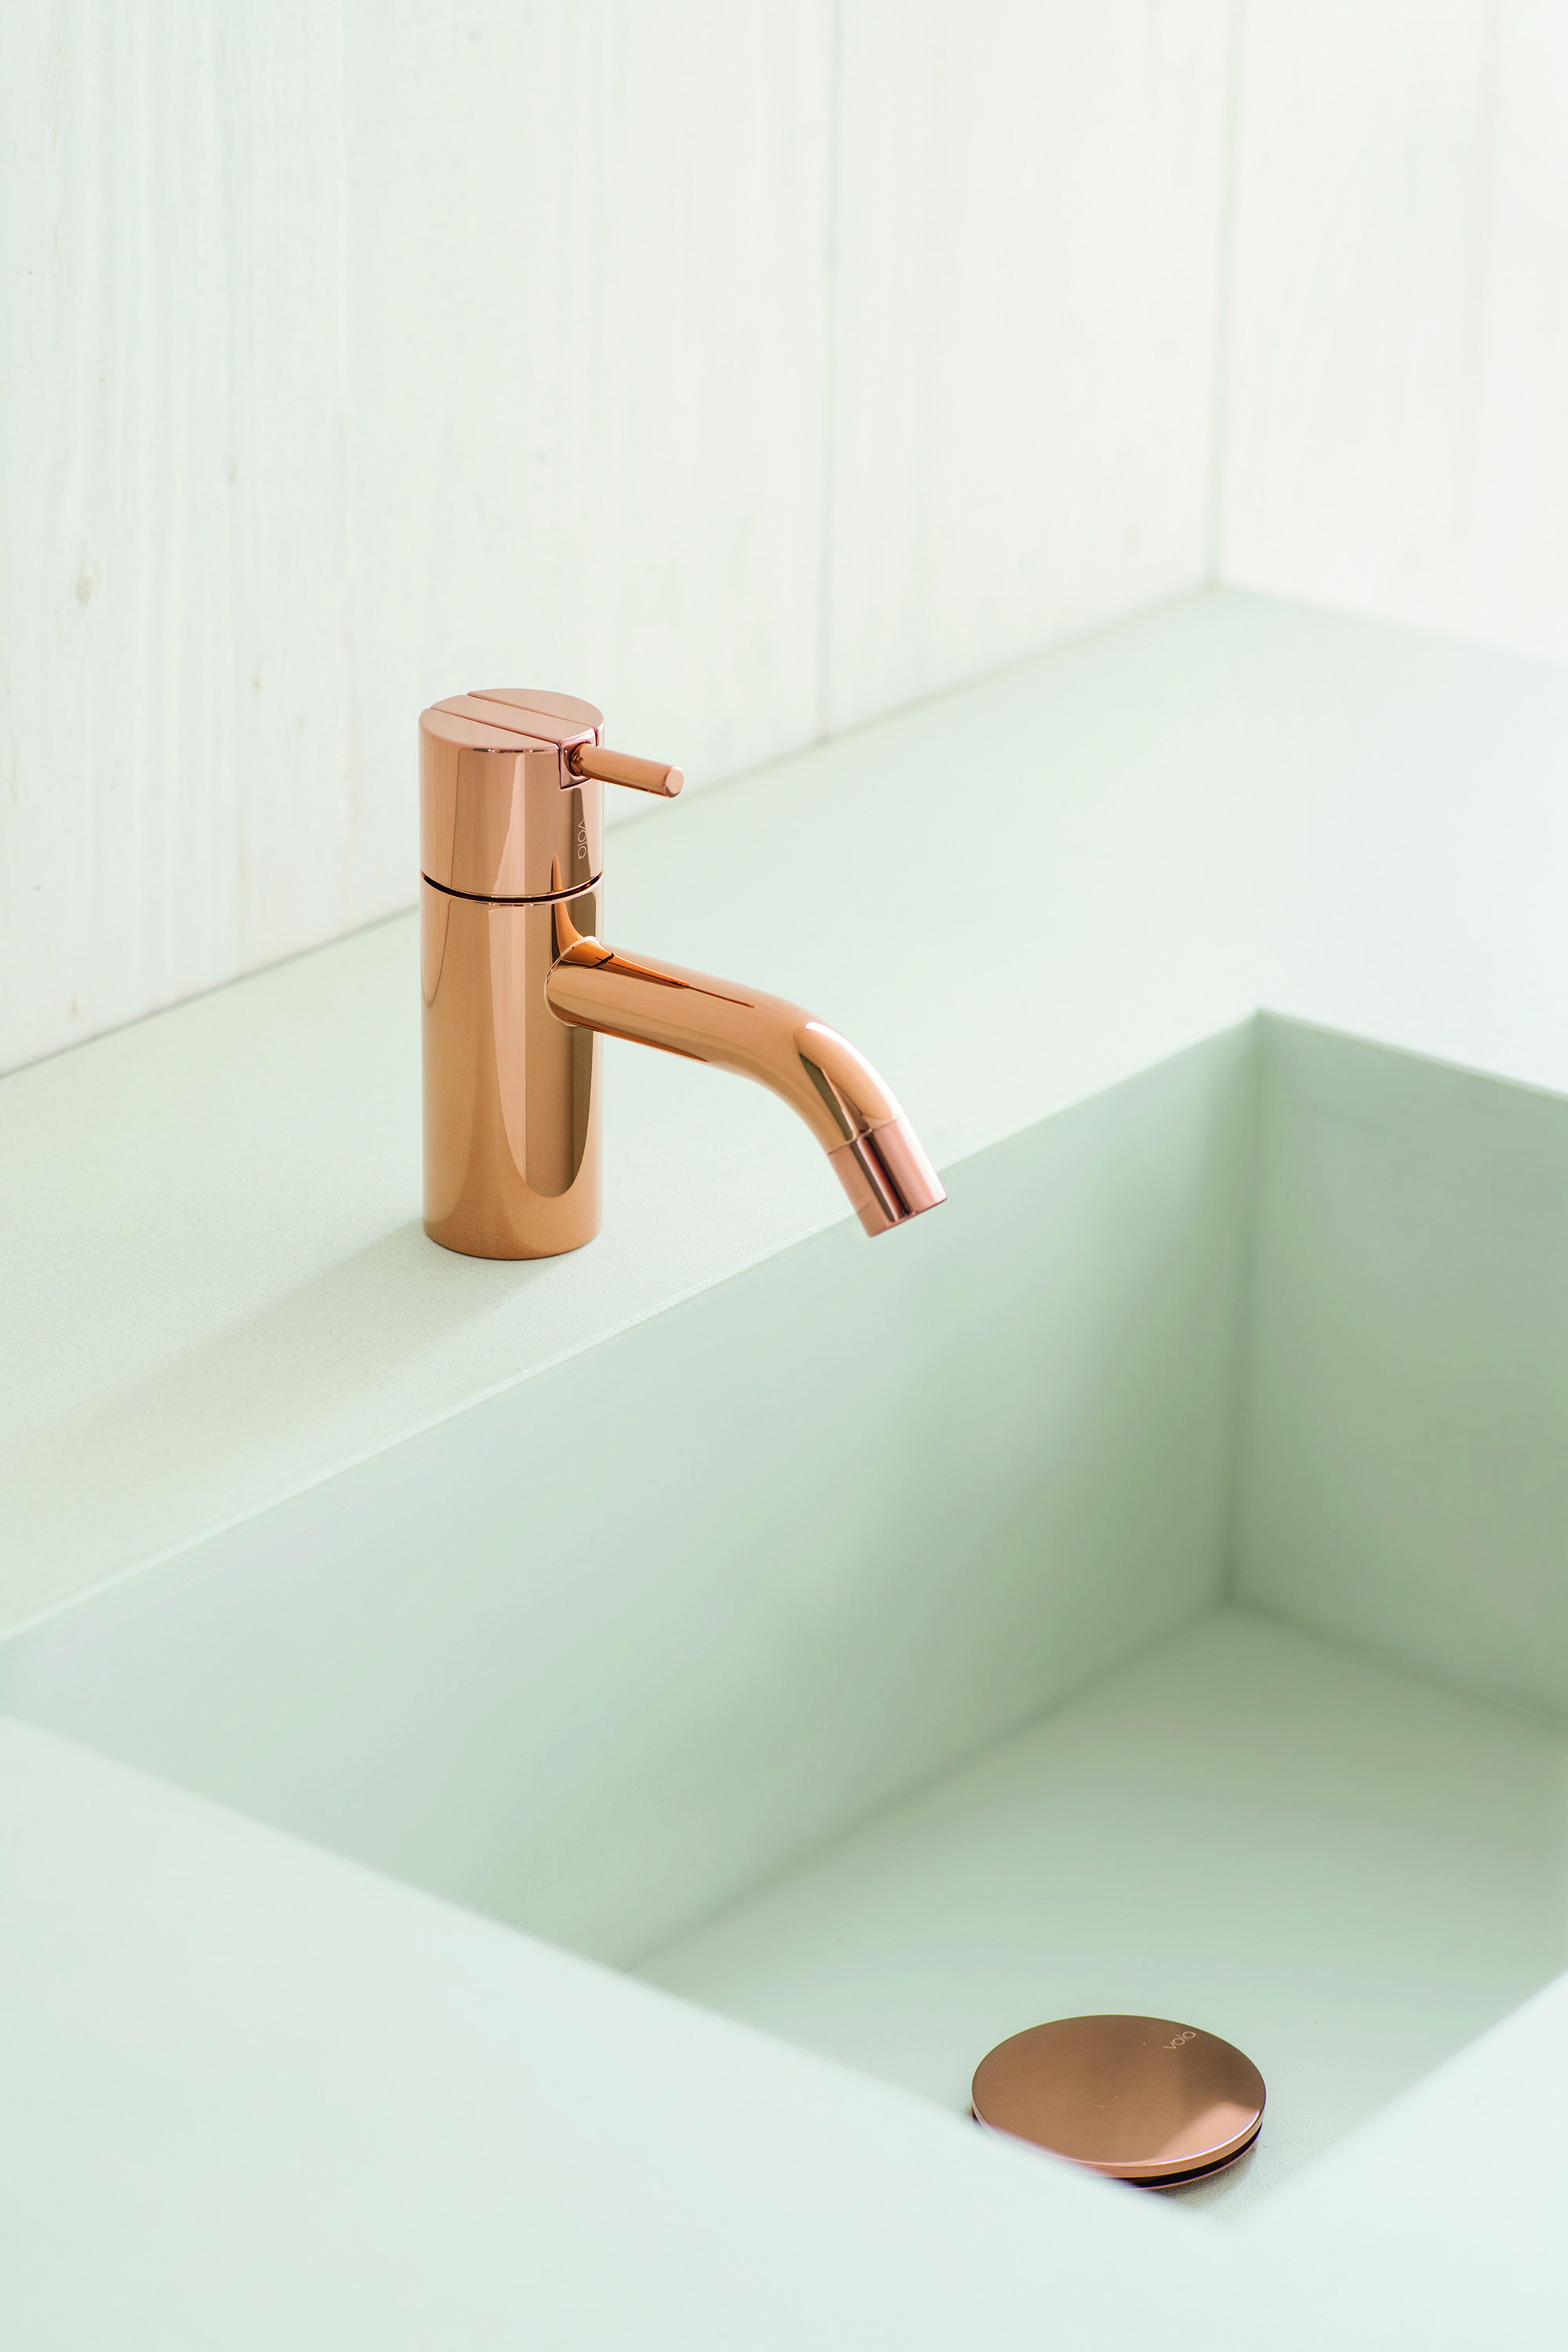 bronze modern home for faucets lowes hansgrohe fau kitchen pull depot sink commercial down metro ideas higharc faucet outstanding mounted wall square